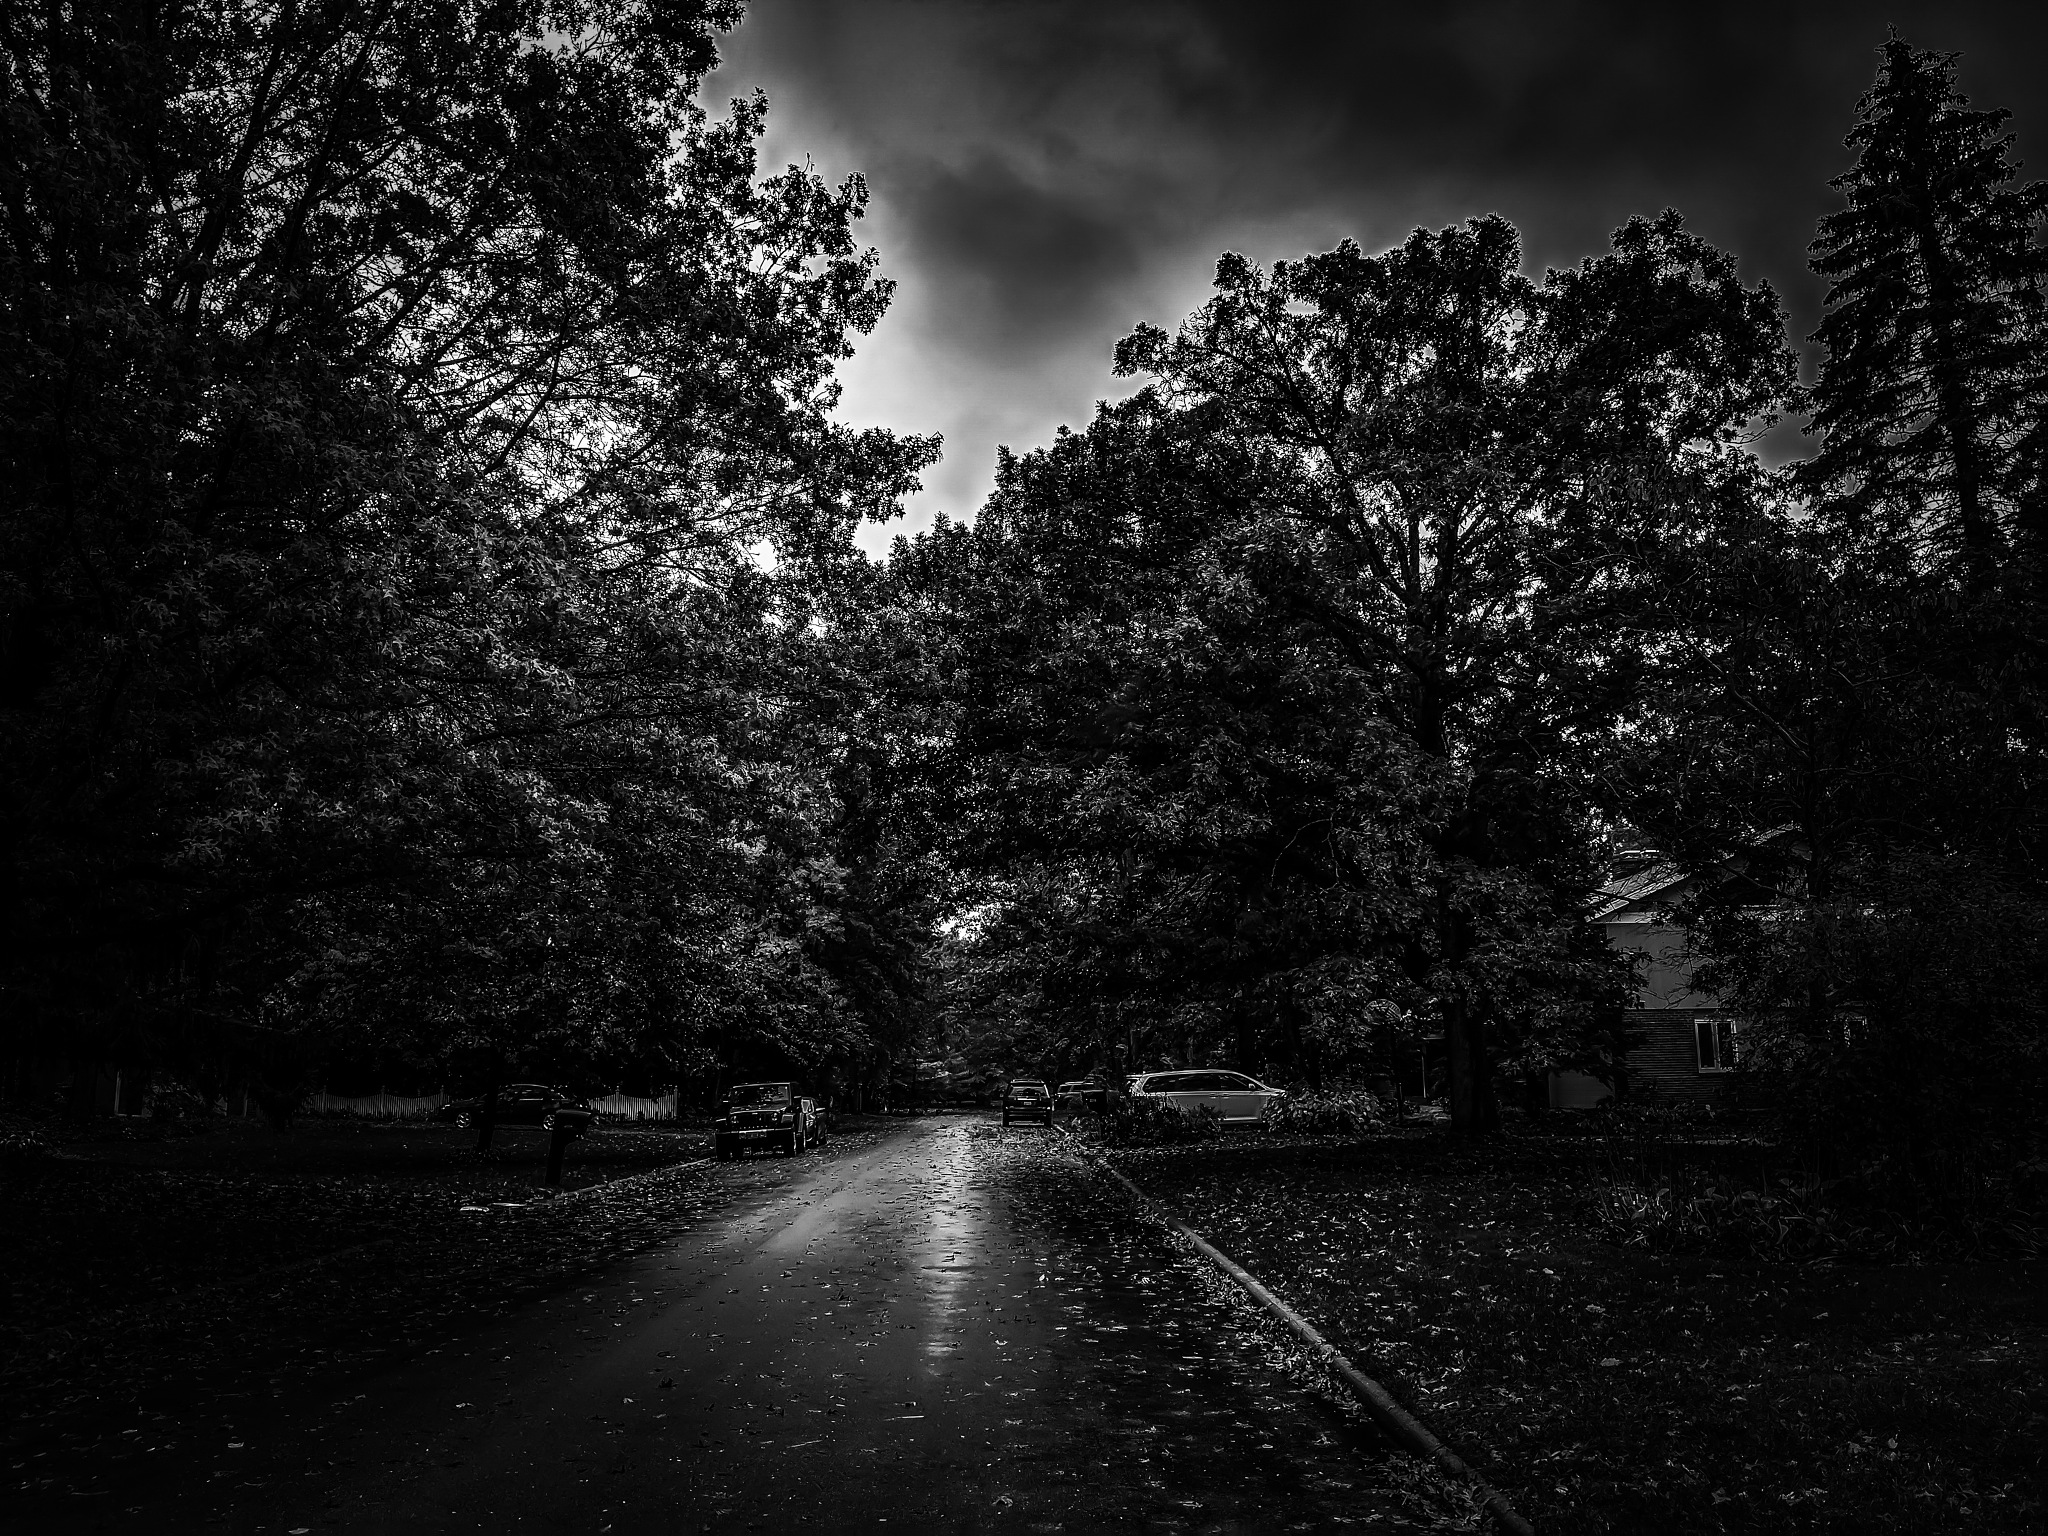 Black and White Midwest Suburb by Connor Brooks McKenzie